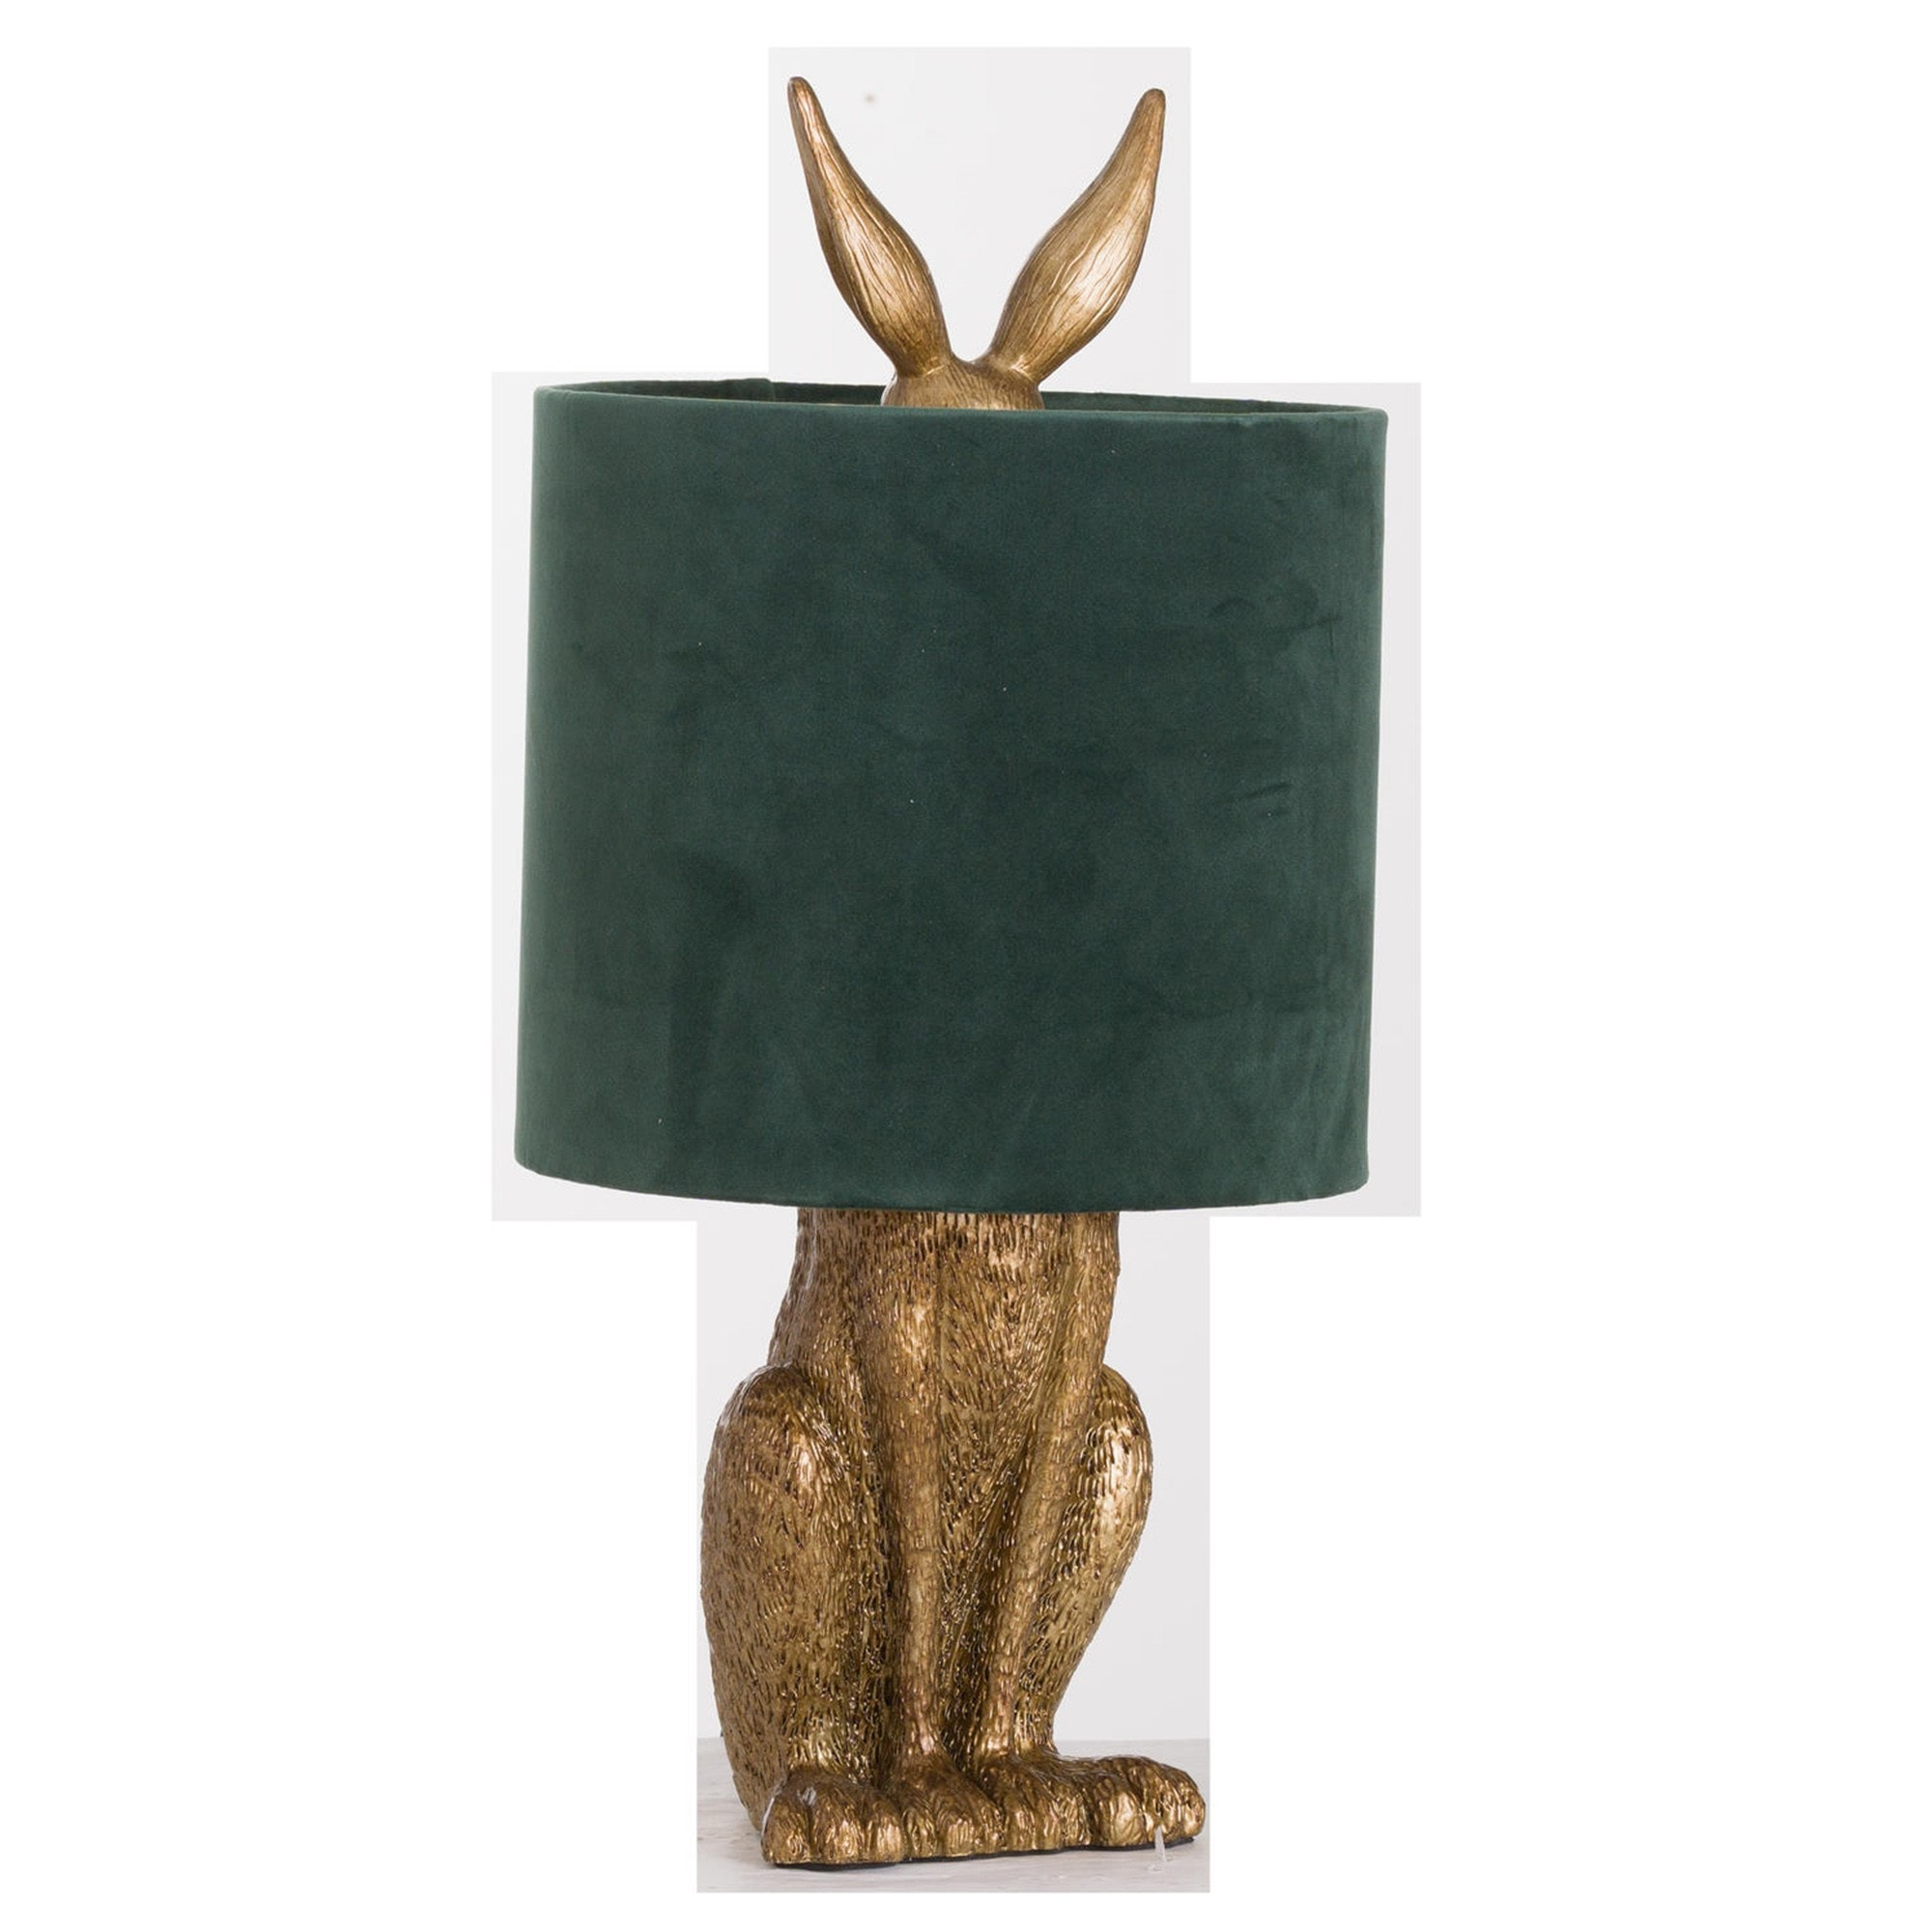 Antique Gold Hare Table Lamp Contemporary Lighting Table Lamps